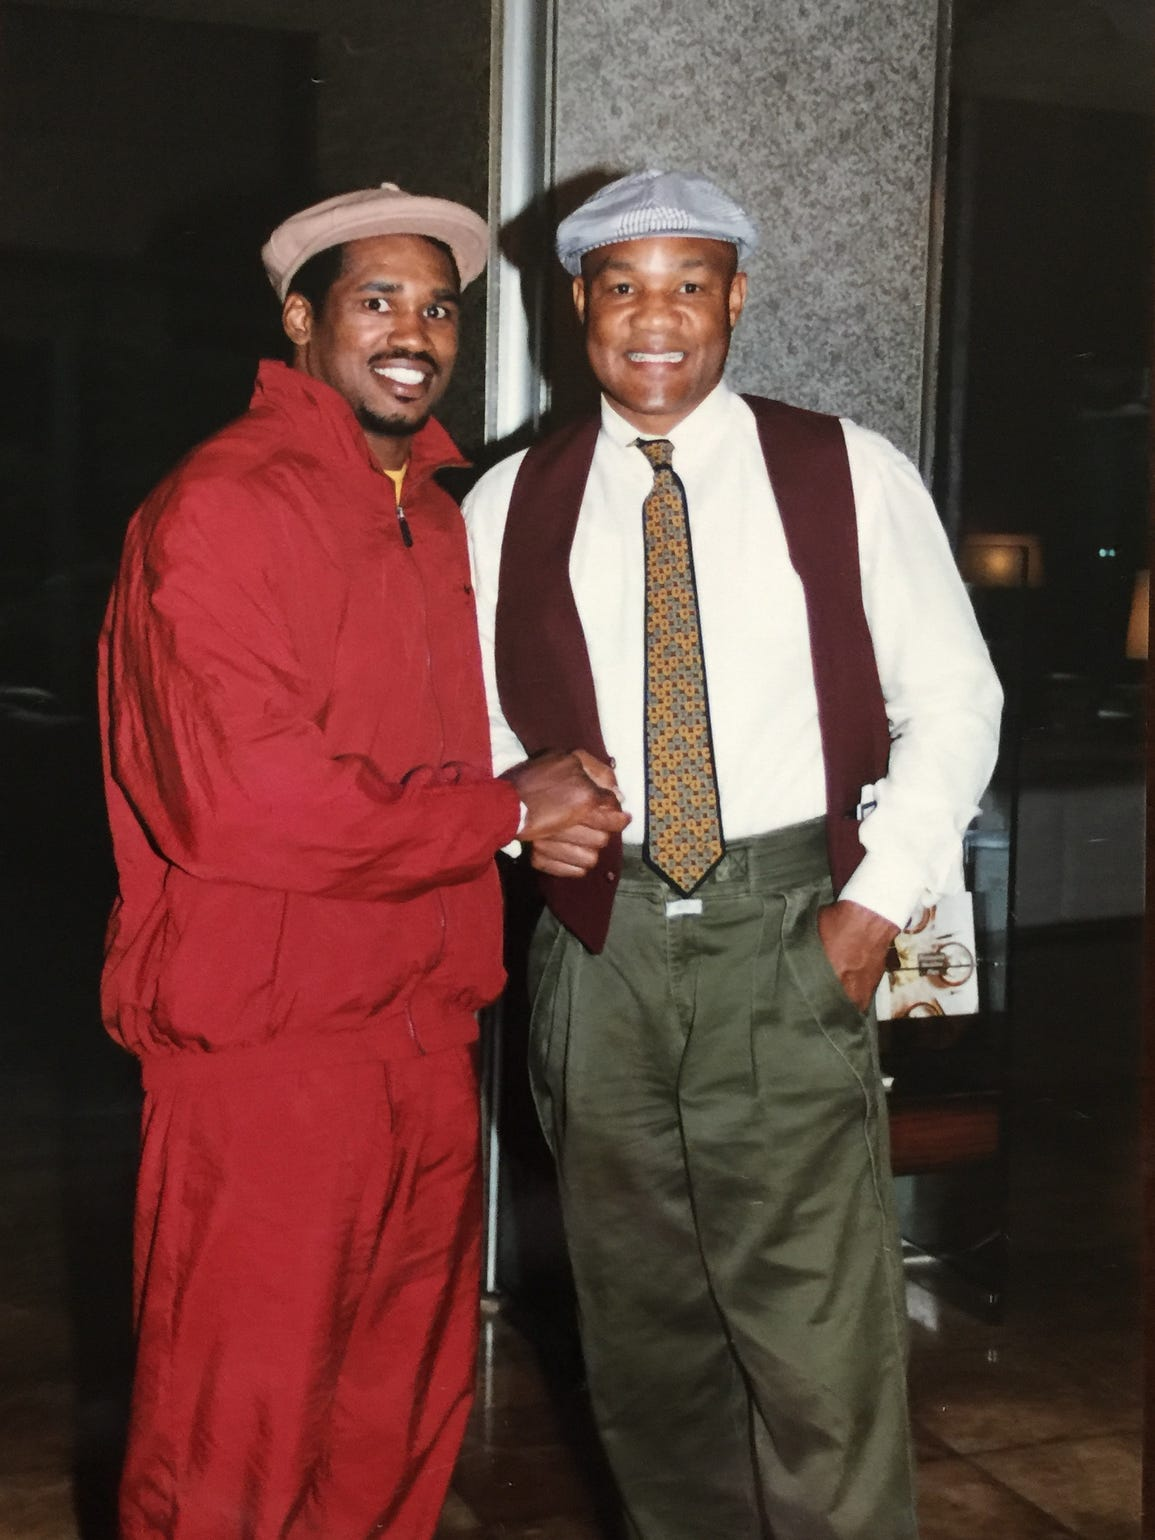 Alonzo Highsmith and former world heavyweight champion